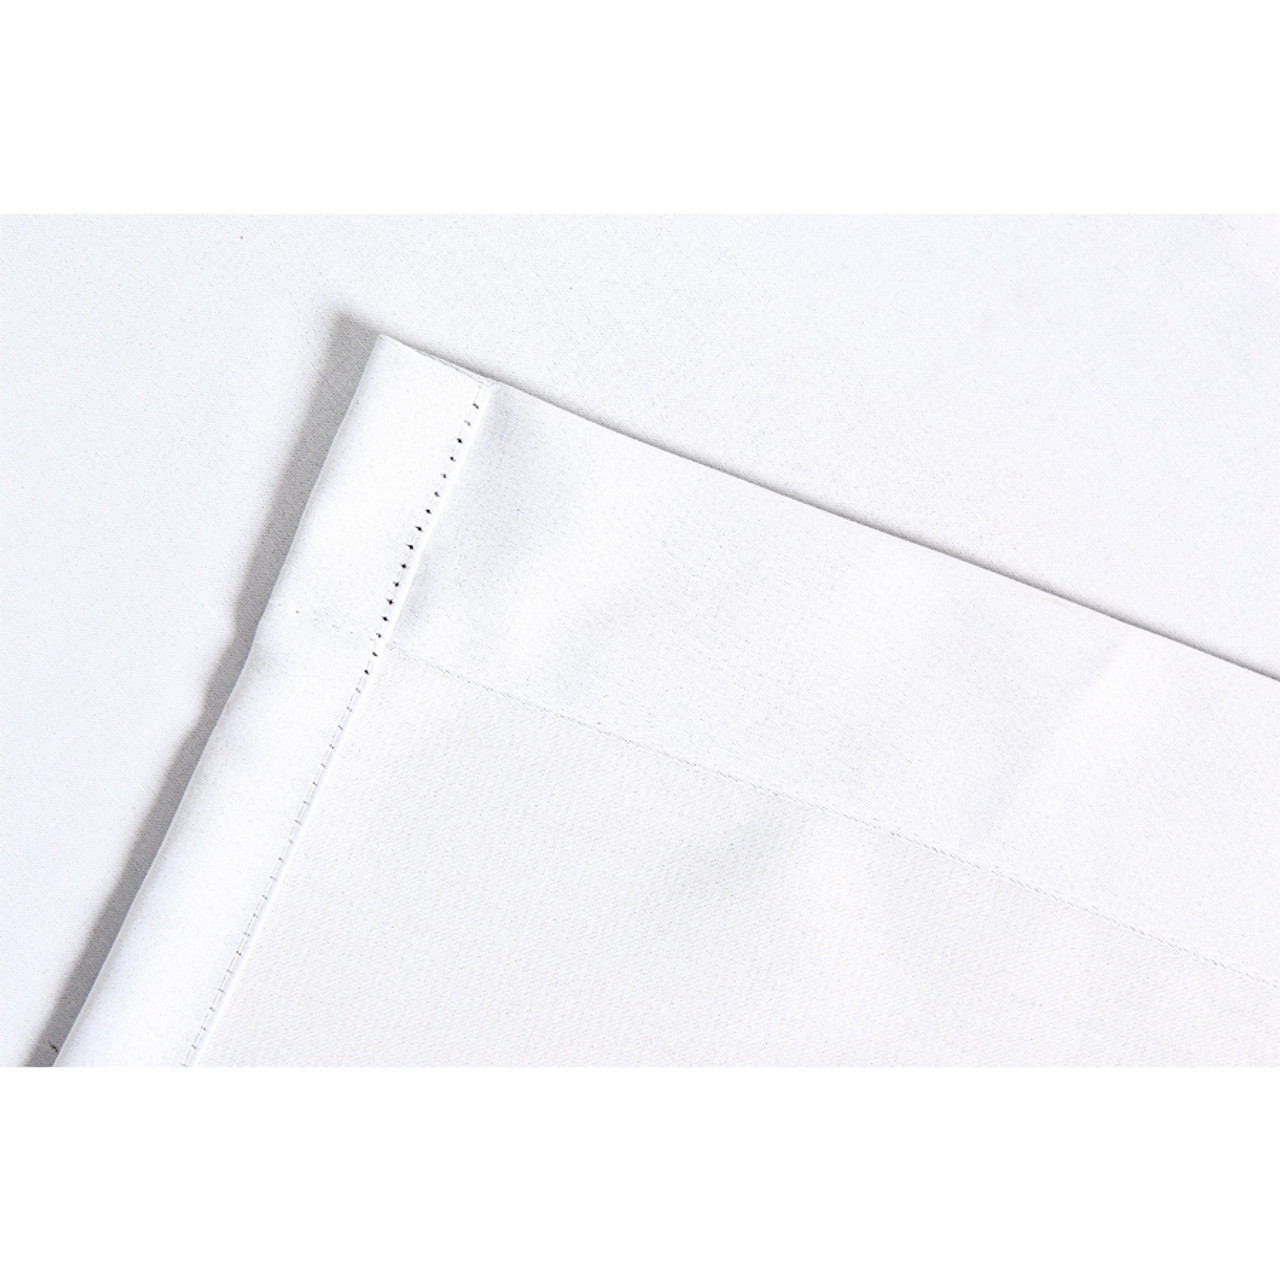 Blackout Room Divider Curtain Panel Thermal Insulated White Color in California, New York, Los Angeles, San Francisco, Pennsylvania, Washington DC, Virginia, Maryland